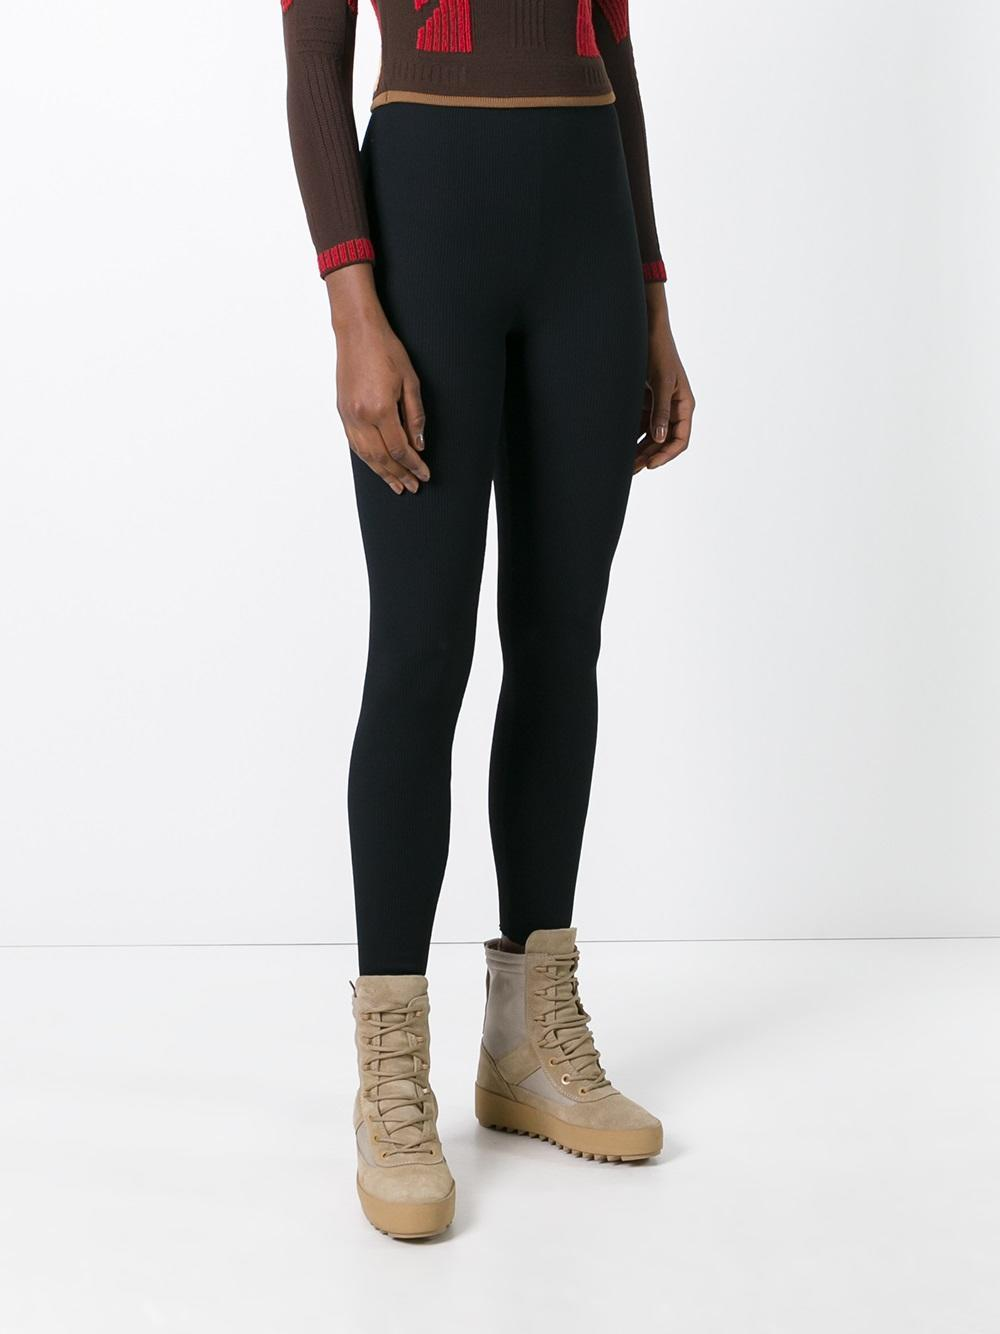 Yeezy Season 3 Leggings in Black